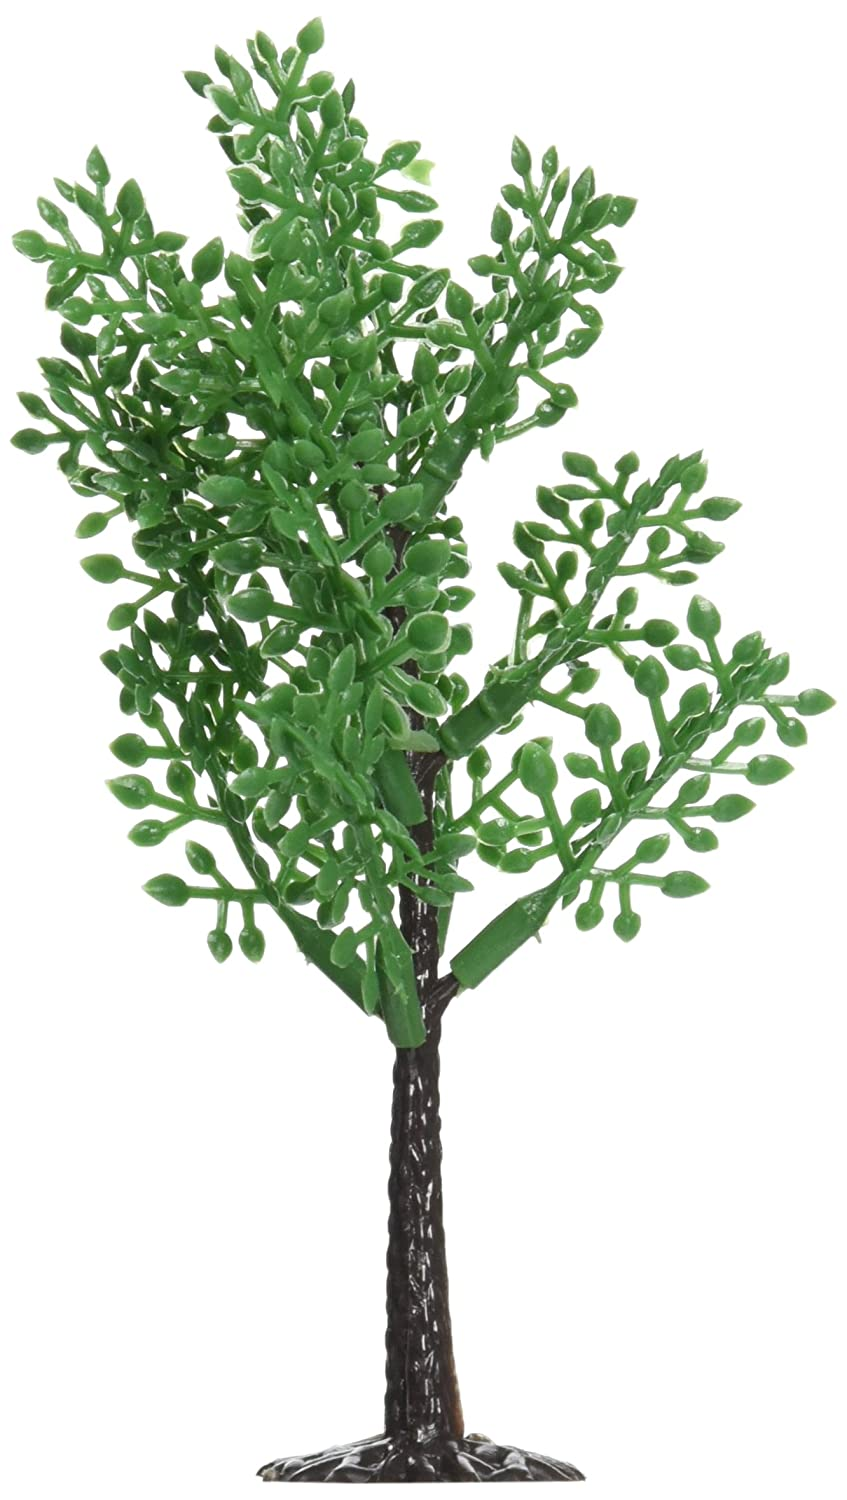 Oasis Supply 12-Piece Branch Tree with Stand for Cake Decorating and Sceneries, 4-Inch 002140-12